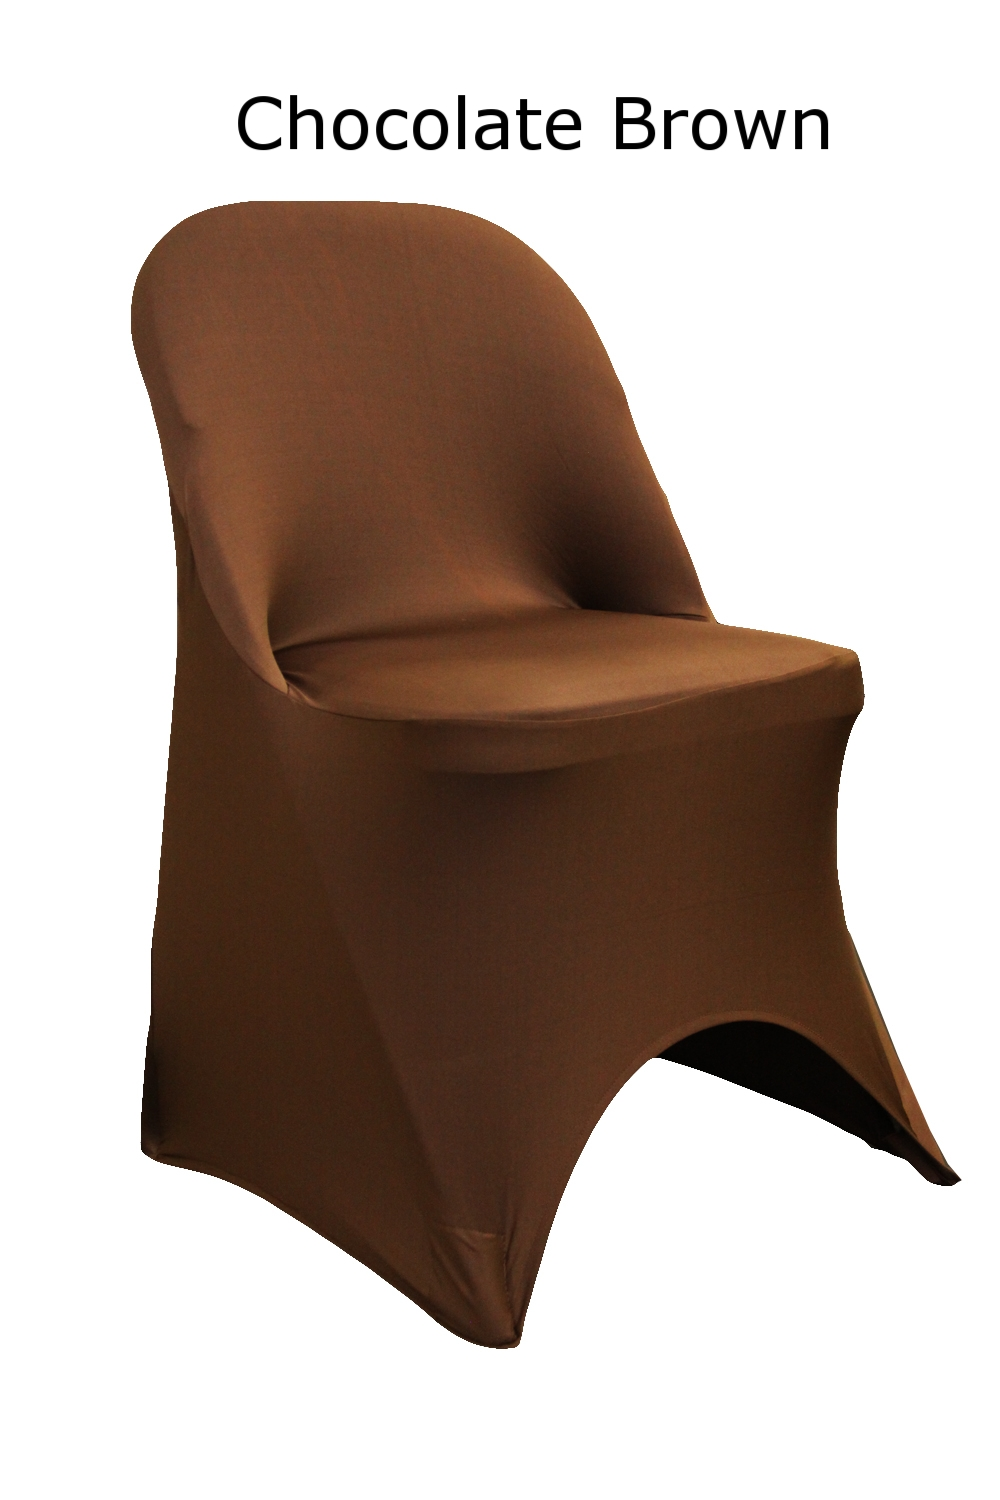 Chair Cover Stretch Chocolate Brown.jpg